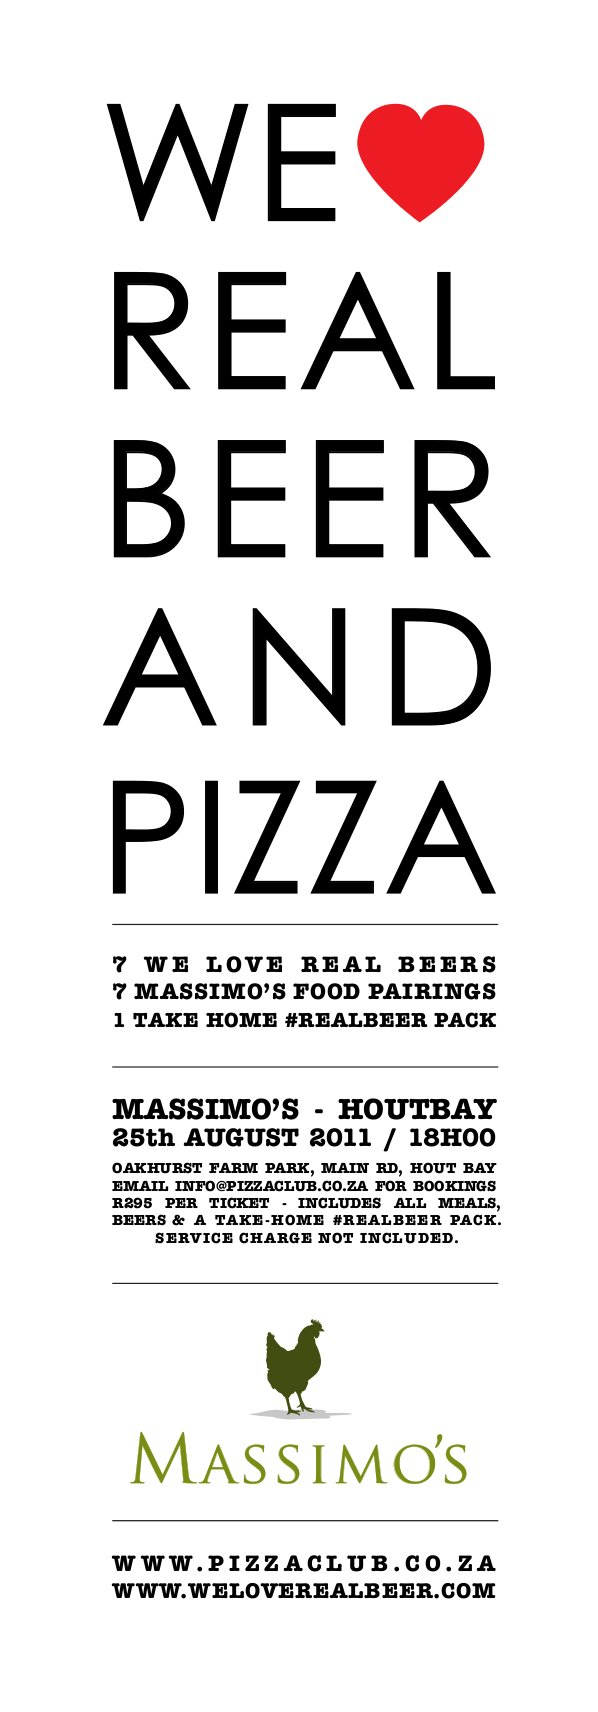 We Love real beer and pizza